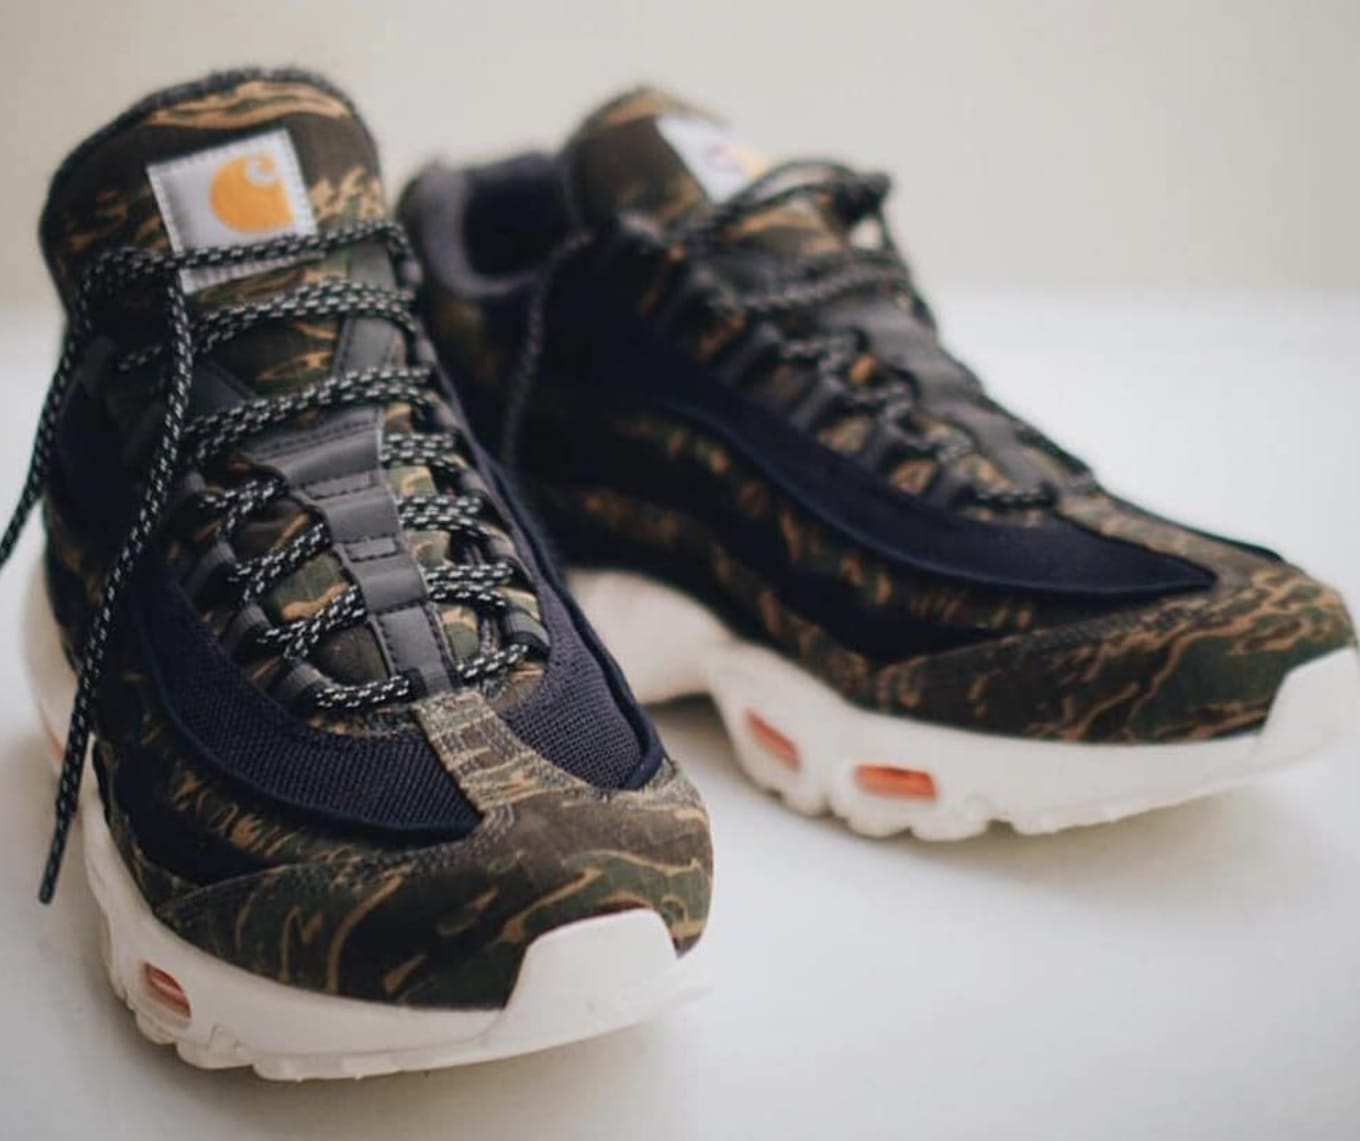 bfeae98adfd48 Carhartt WIP x Nike Air Max 95 Collaboration Release Date | Sole ...